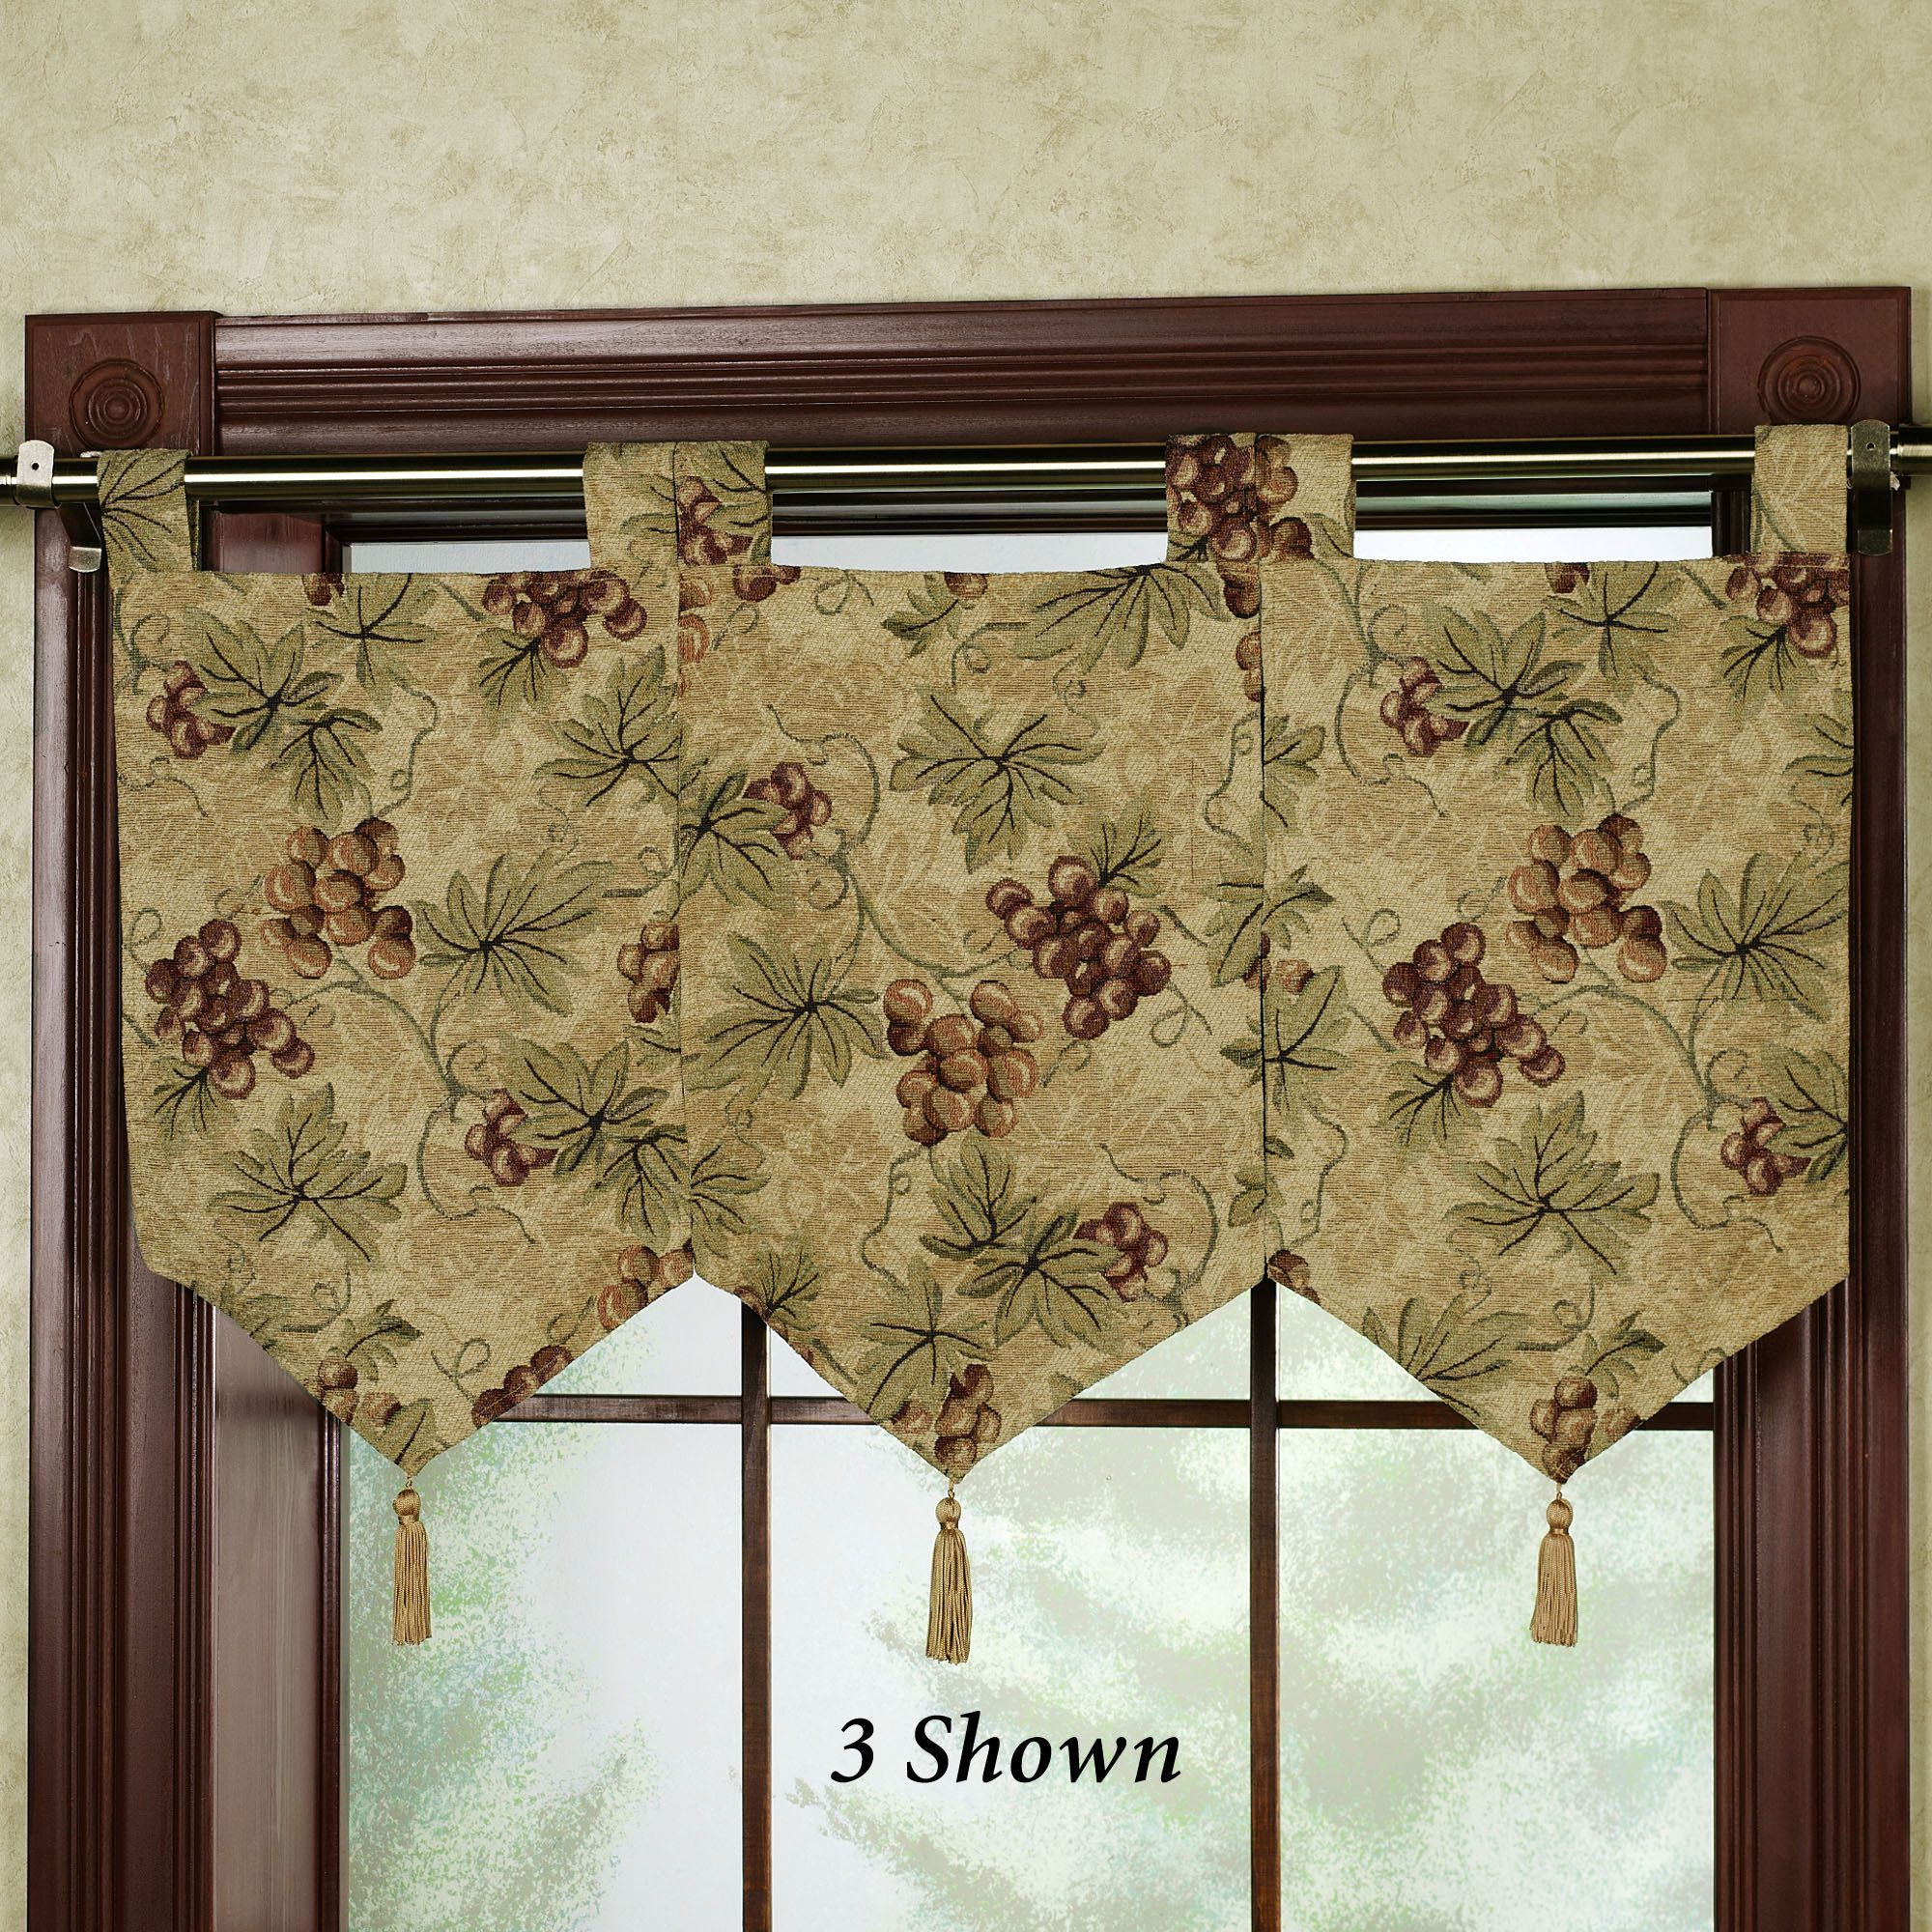 floral jubilee empire valance light cream 110 x 28 bedspreads